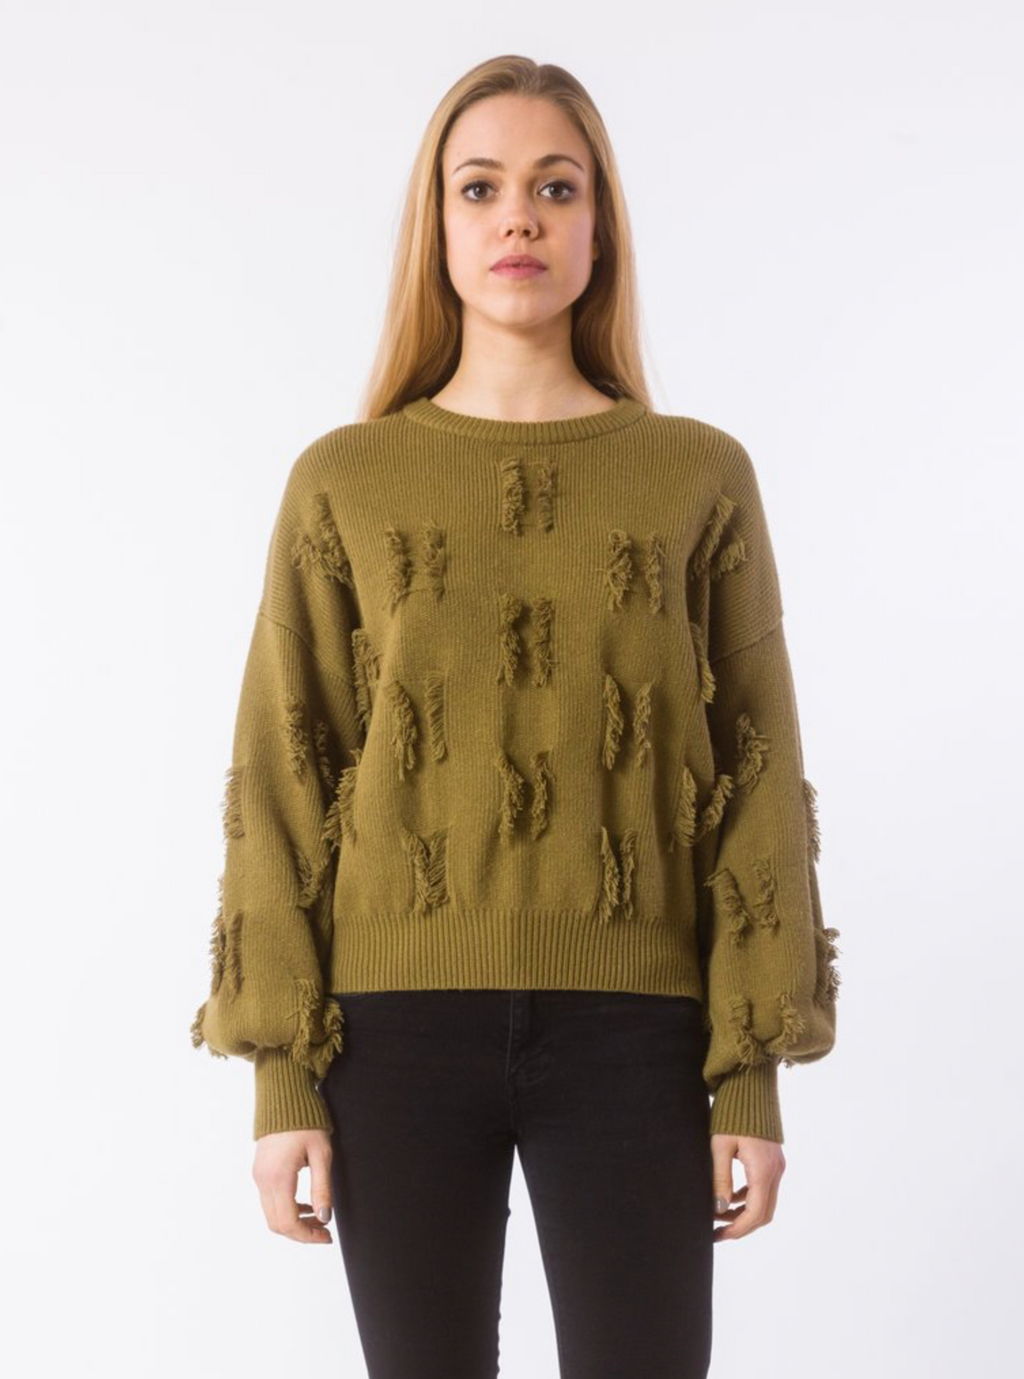 The Cece Sweater